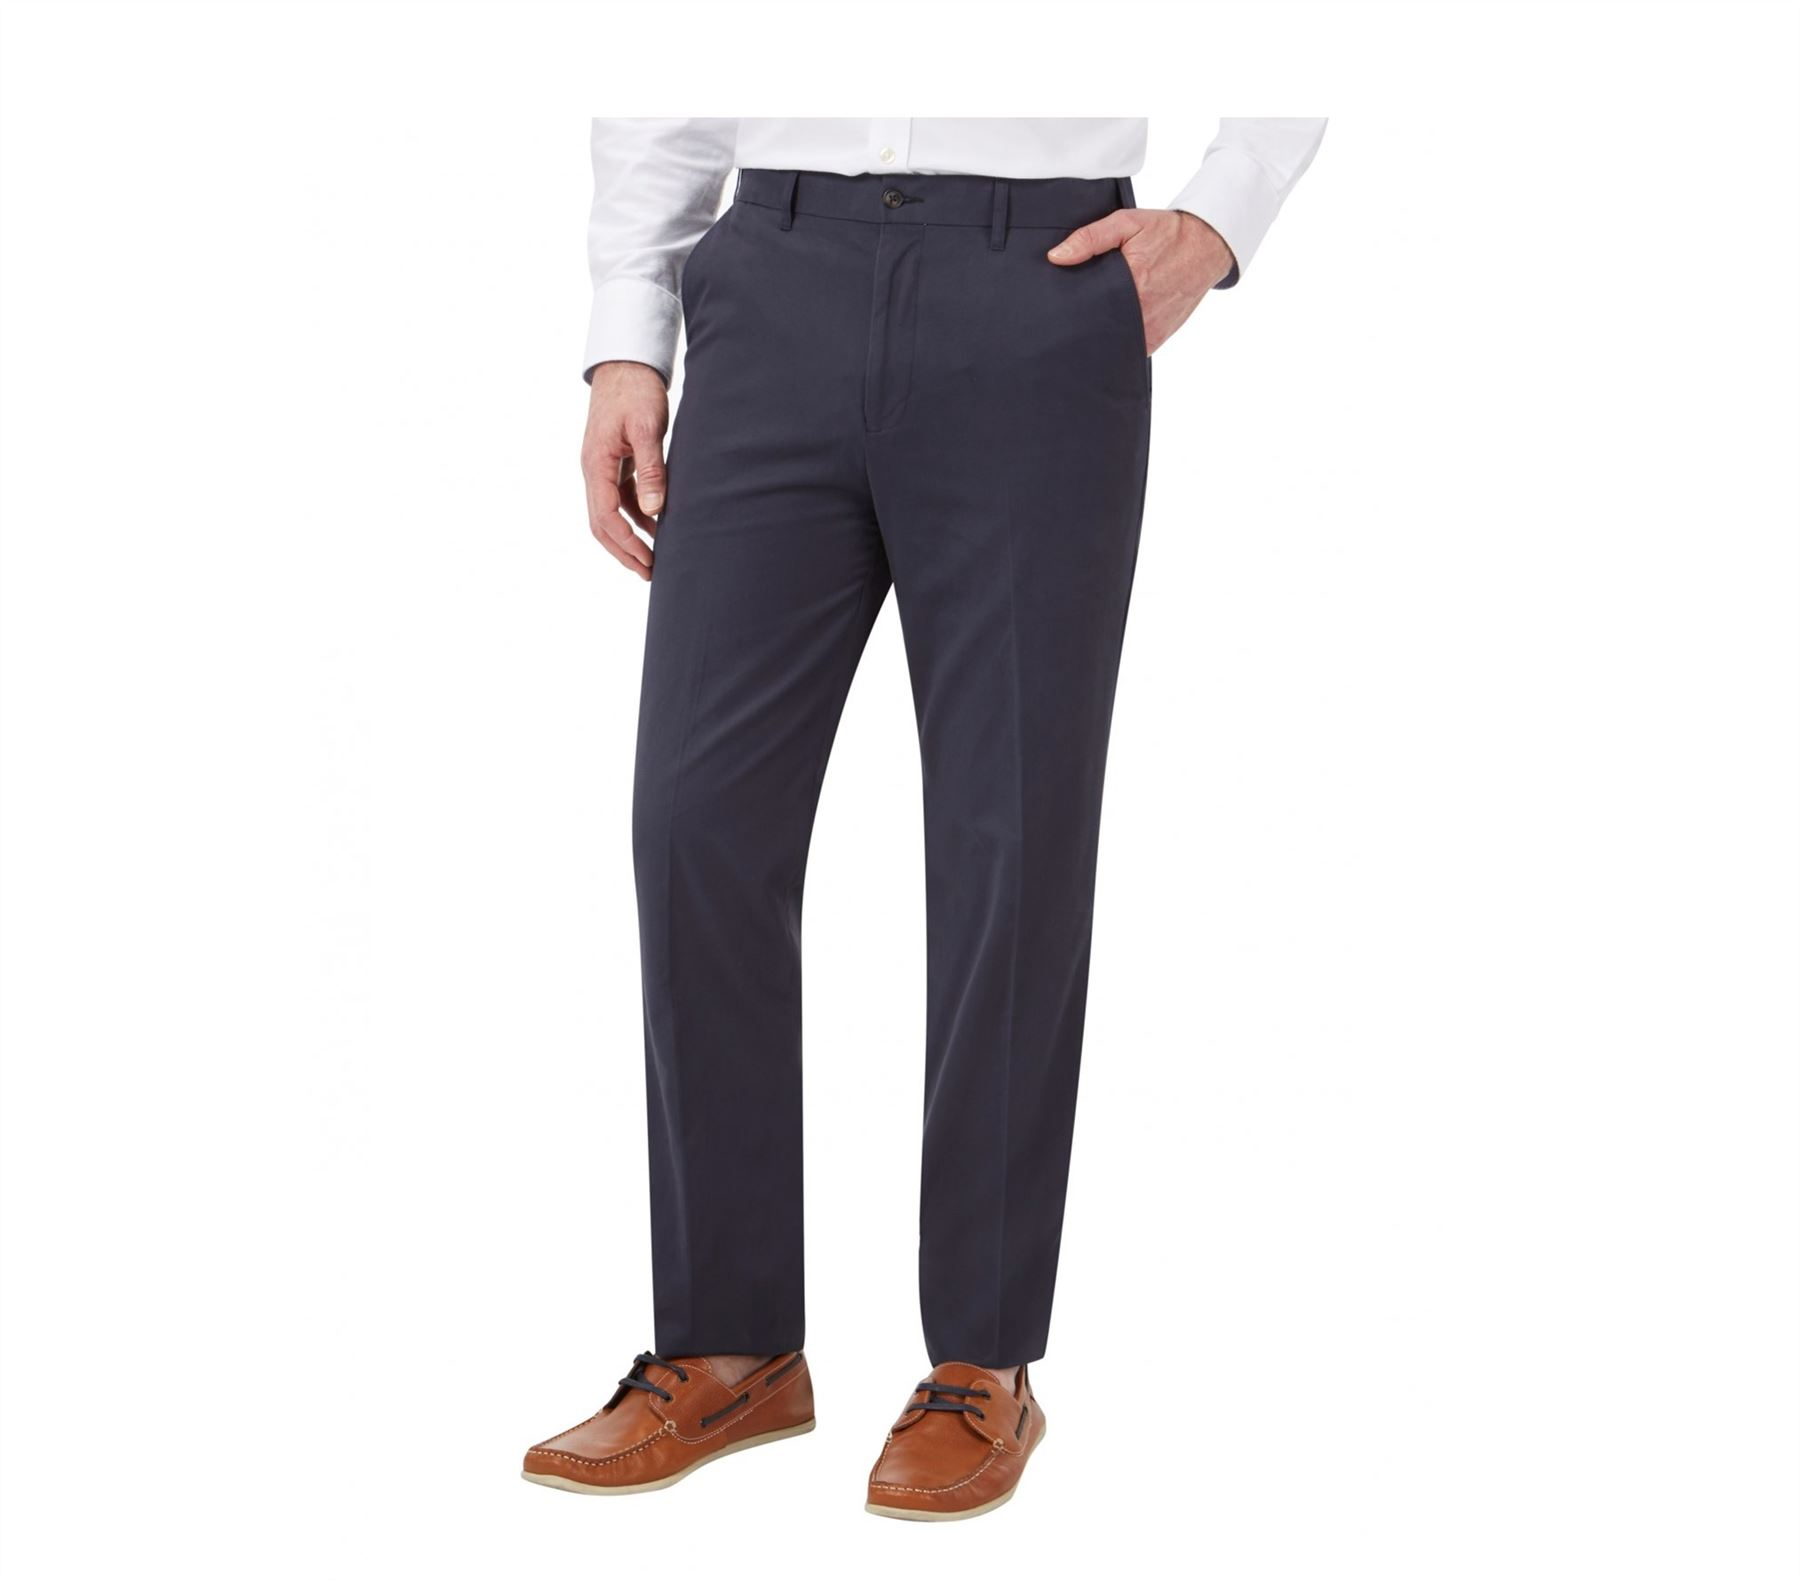 Skopes Flexi Taille Taille Taille Coton Sergé Chino Pantalon (Padstow) en taille 42 To 56 in (environ 142.24 cm) d8b13a